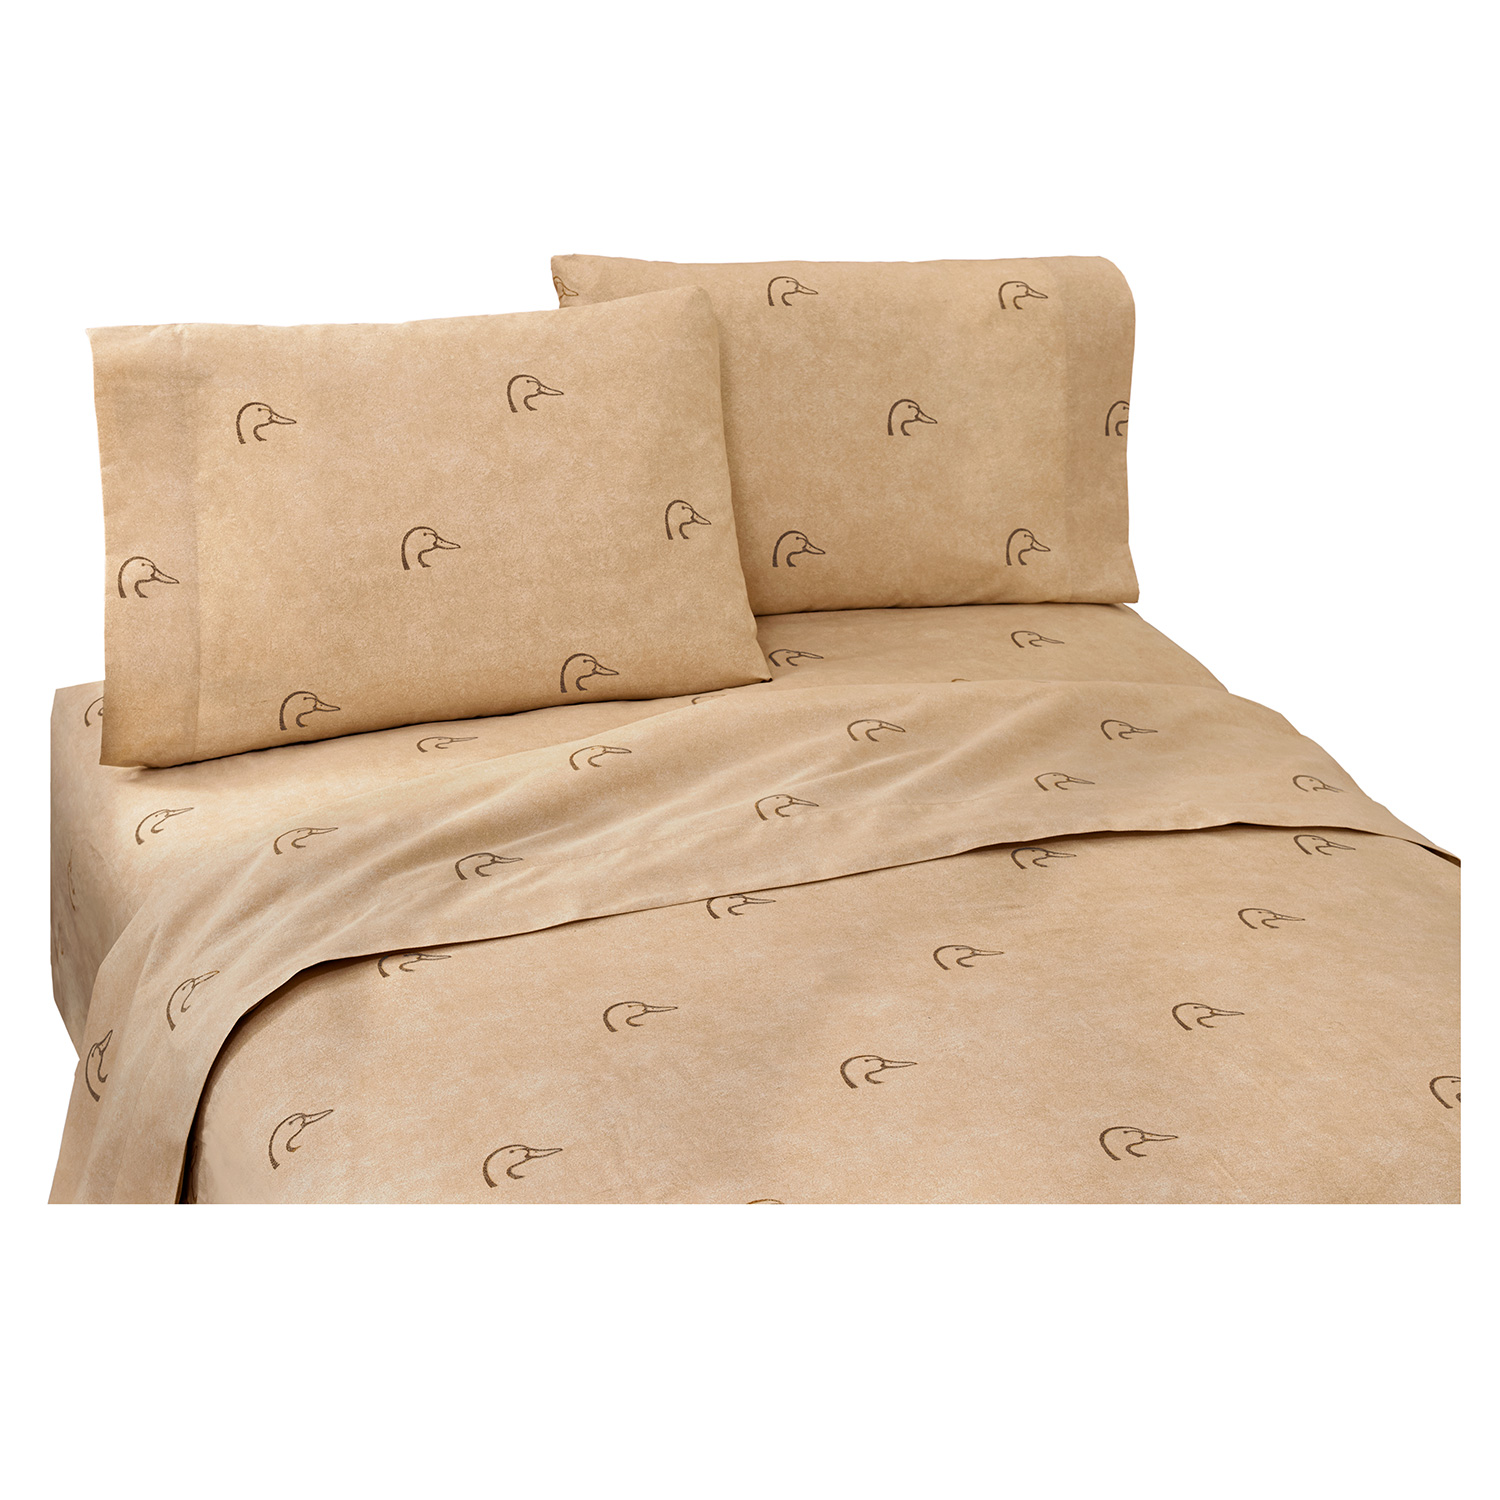 revamp sheets here the ducksunlimited bedding blog rustic you is bed help to your